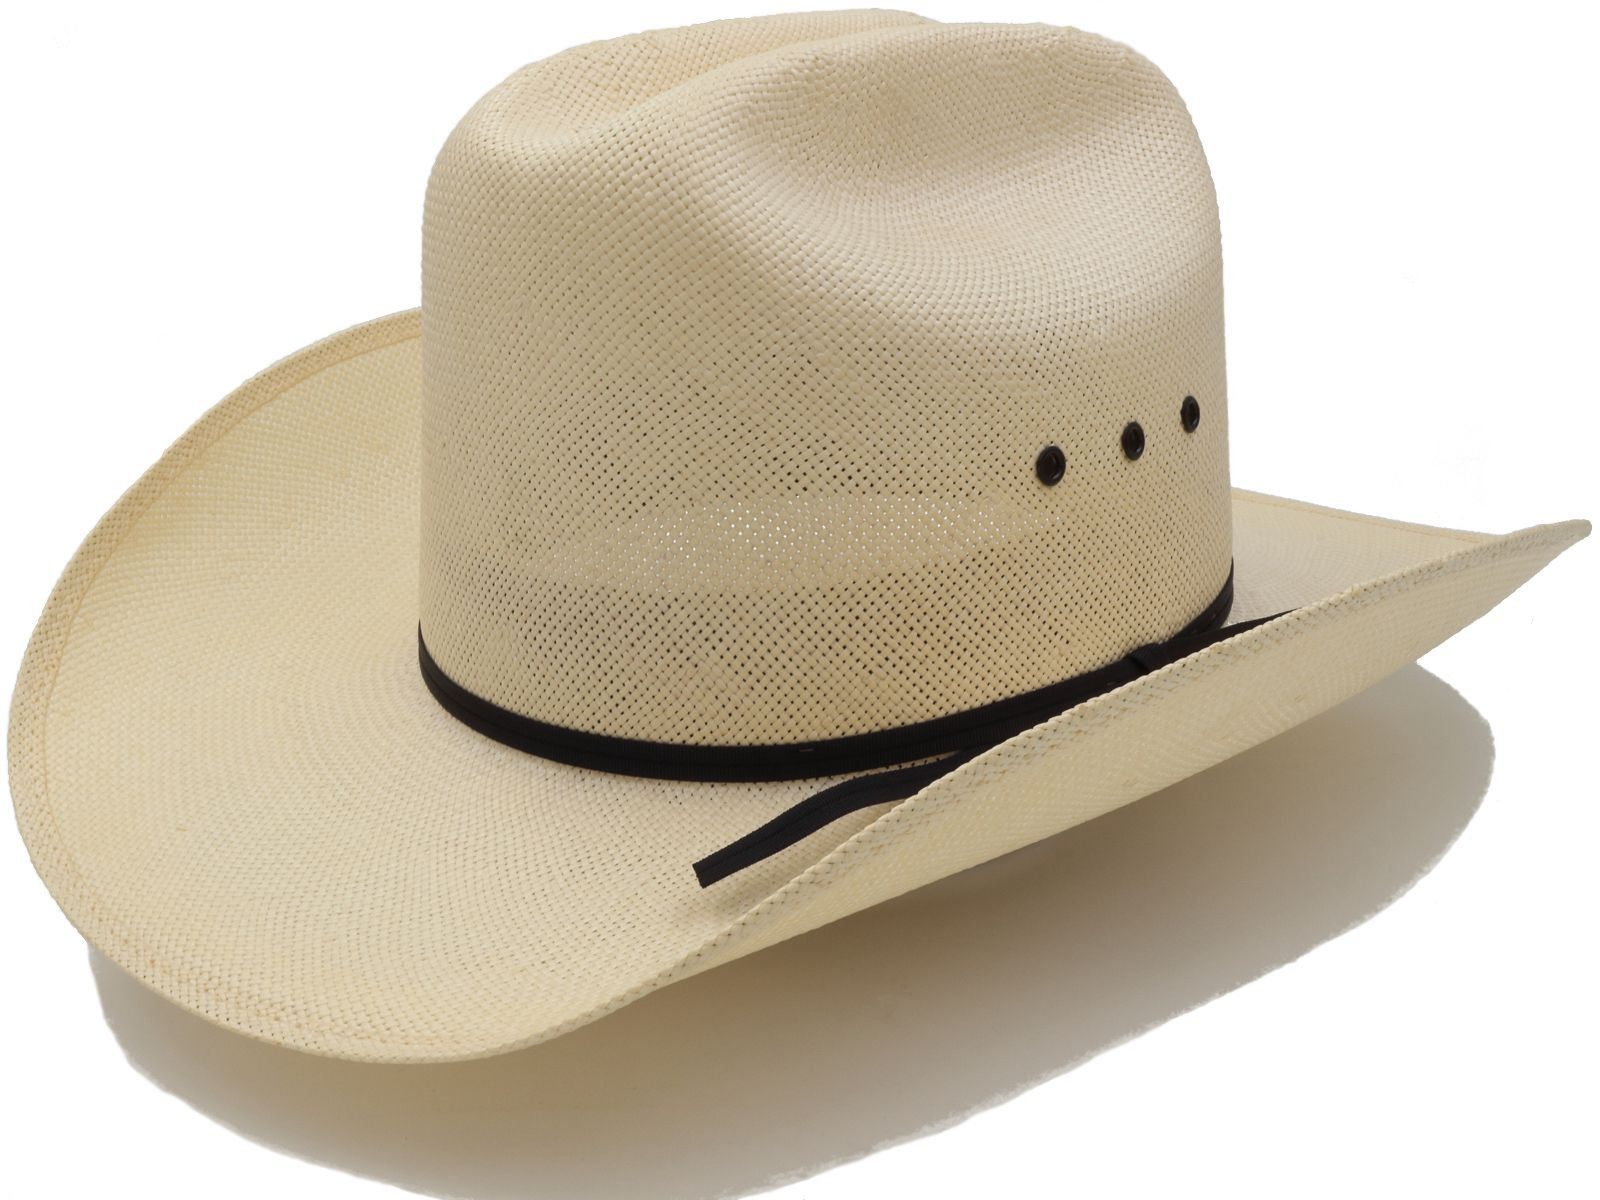 Triangle Headwear Straw Hats